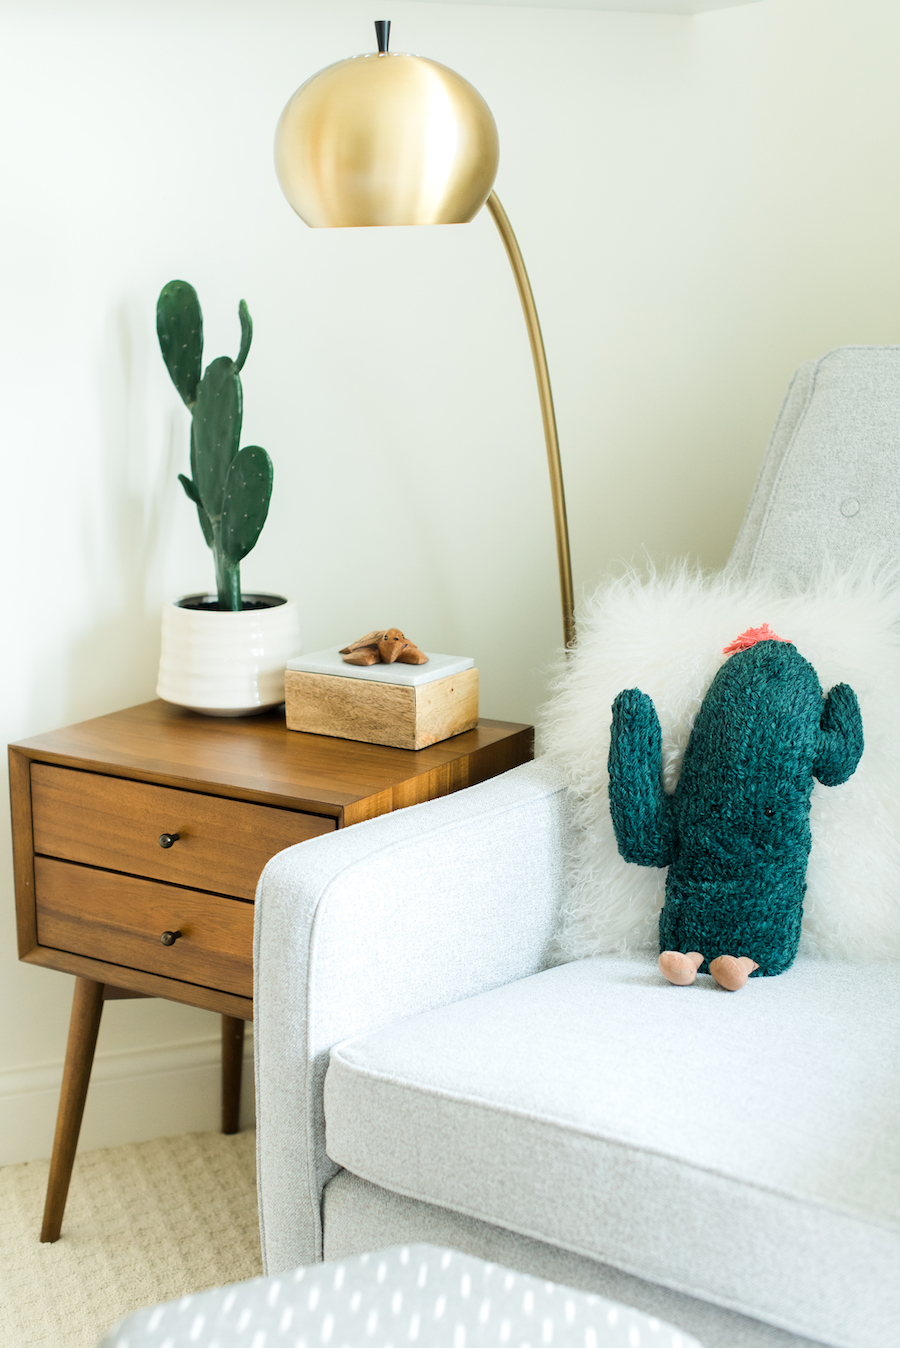 Jenna Kutcher's Gender Neutral Nursery by Little Crown Interiors